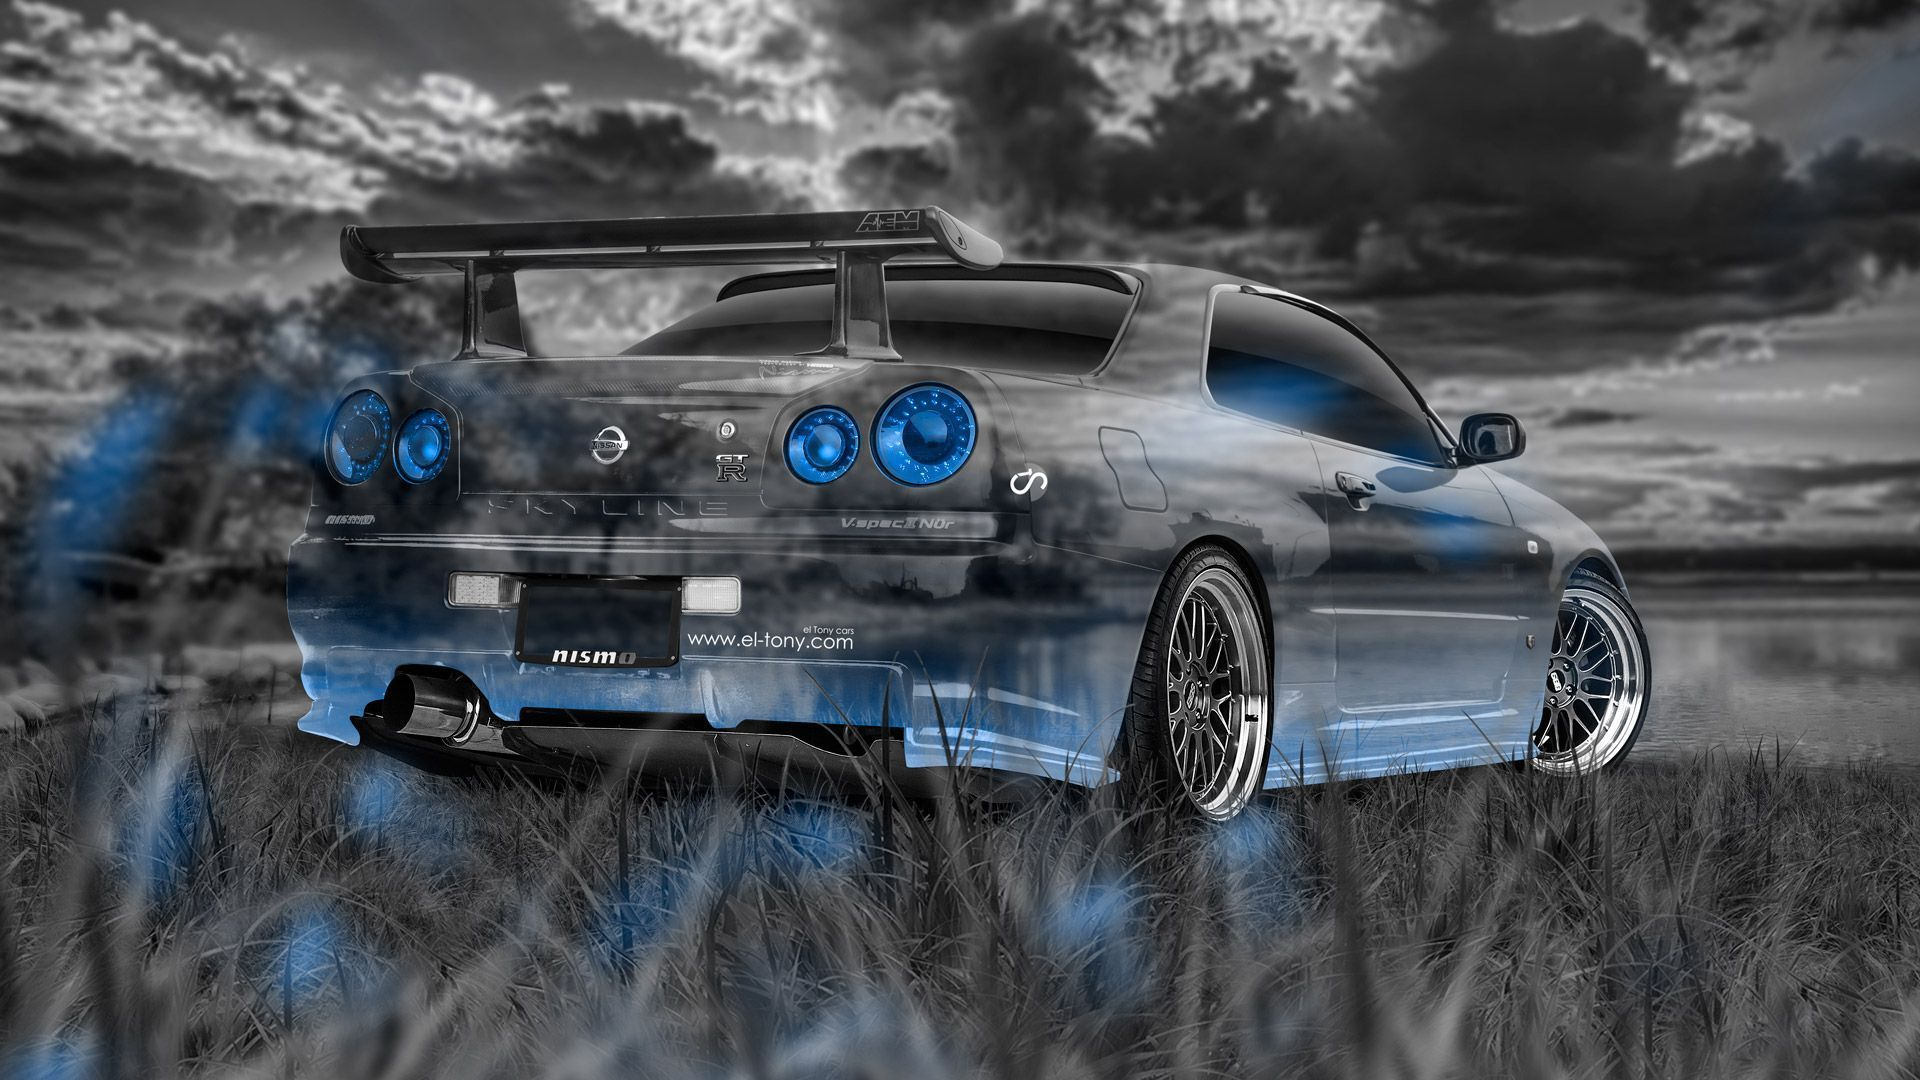 Nissan Skyline GTR R34 JDM Crystal Nature Car 2014 El Tony